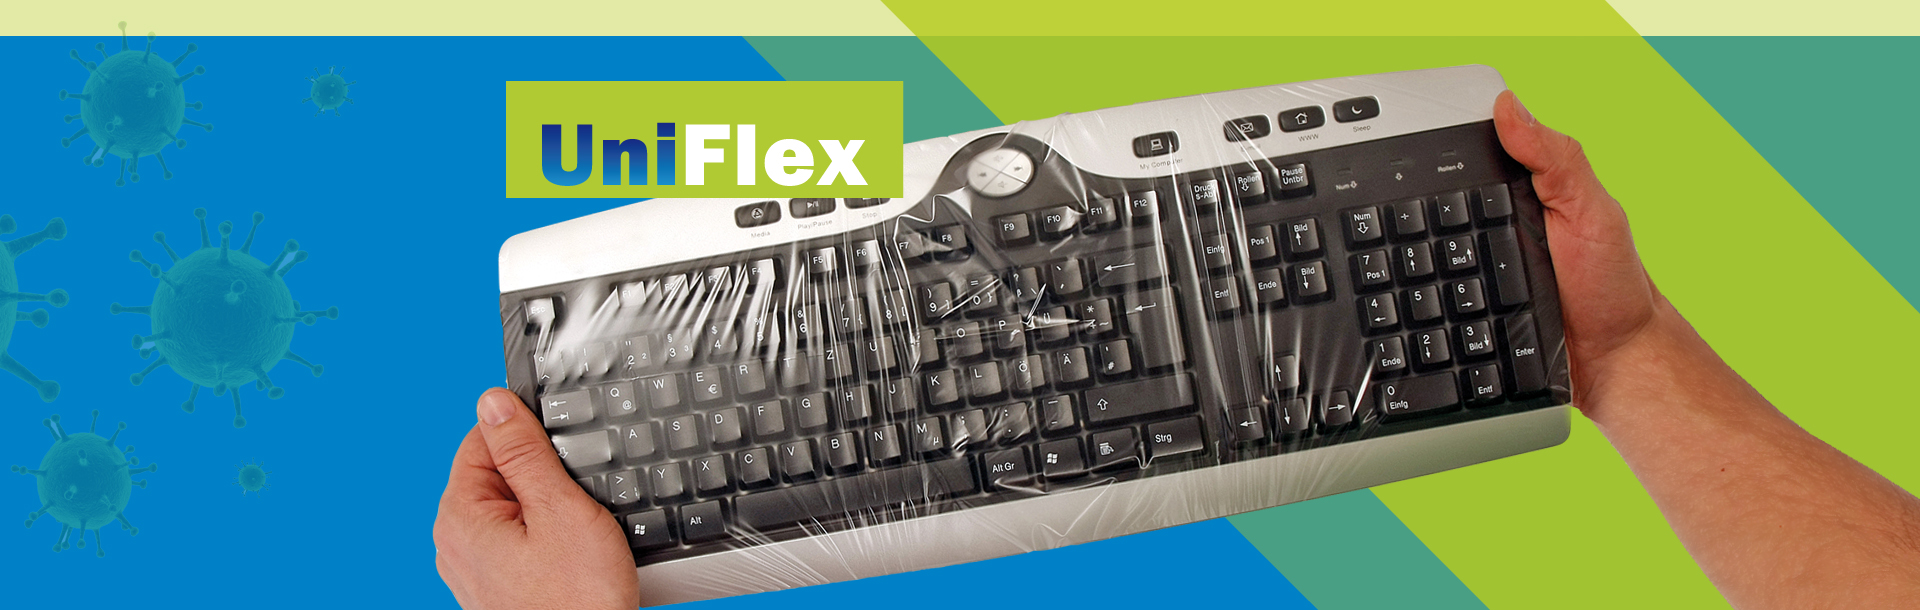 Universal flexible keyboard cover UNI FLEX - Baaske Medical